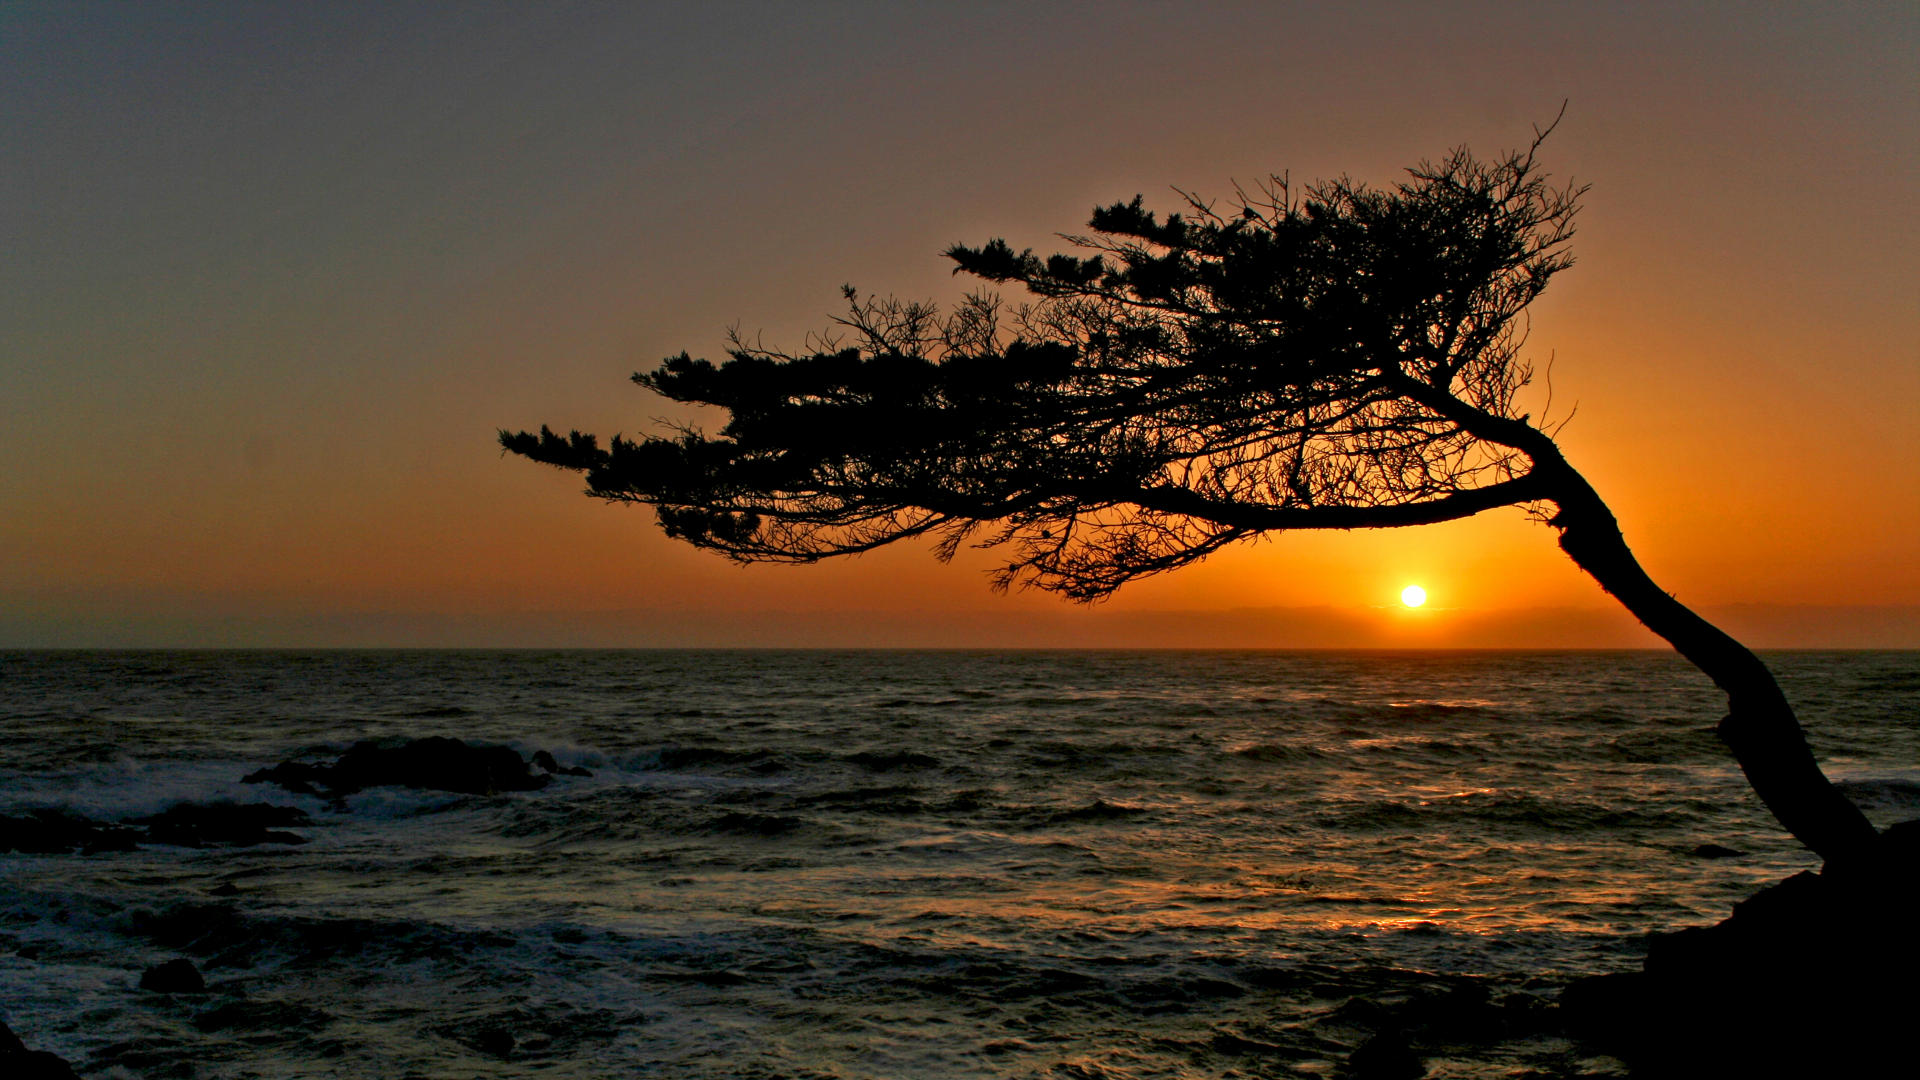 Download Stunning California Sunset 30154 1920x1080 Px